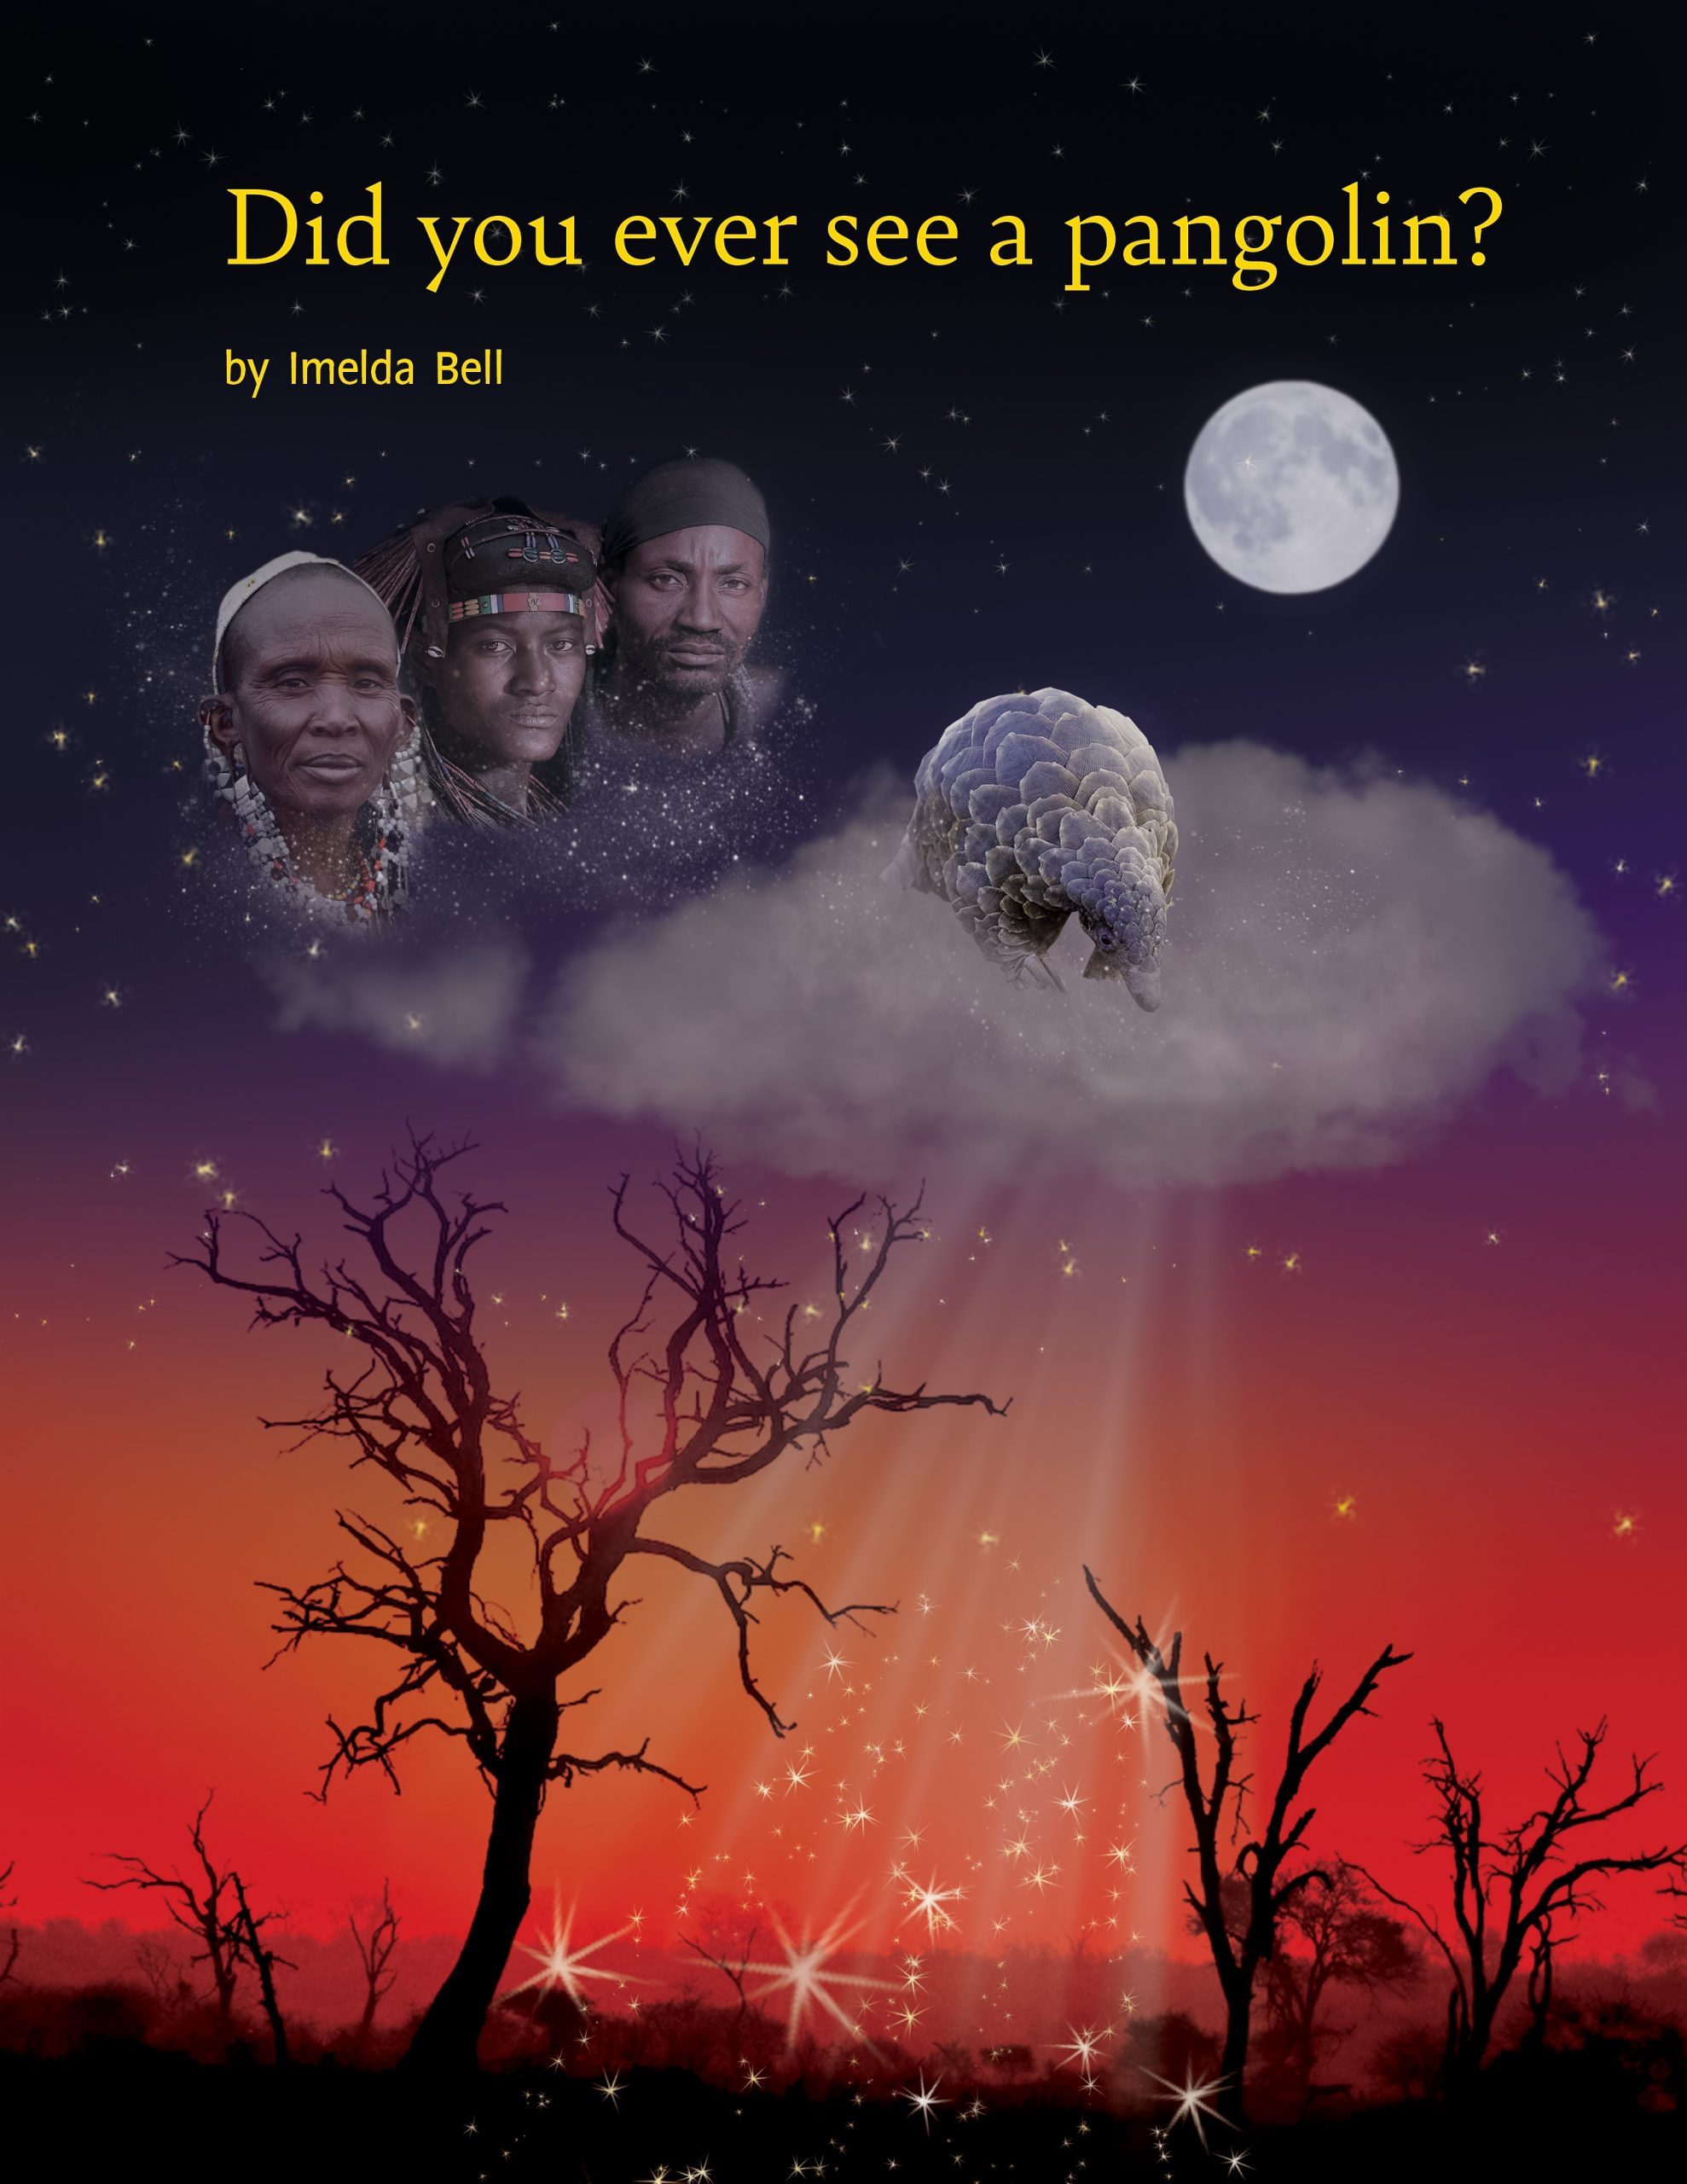 Pangolin protection, children's story